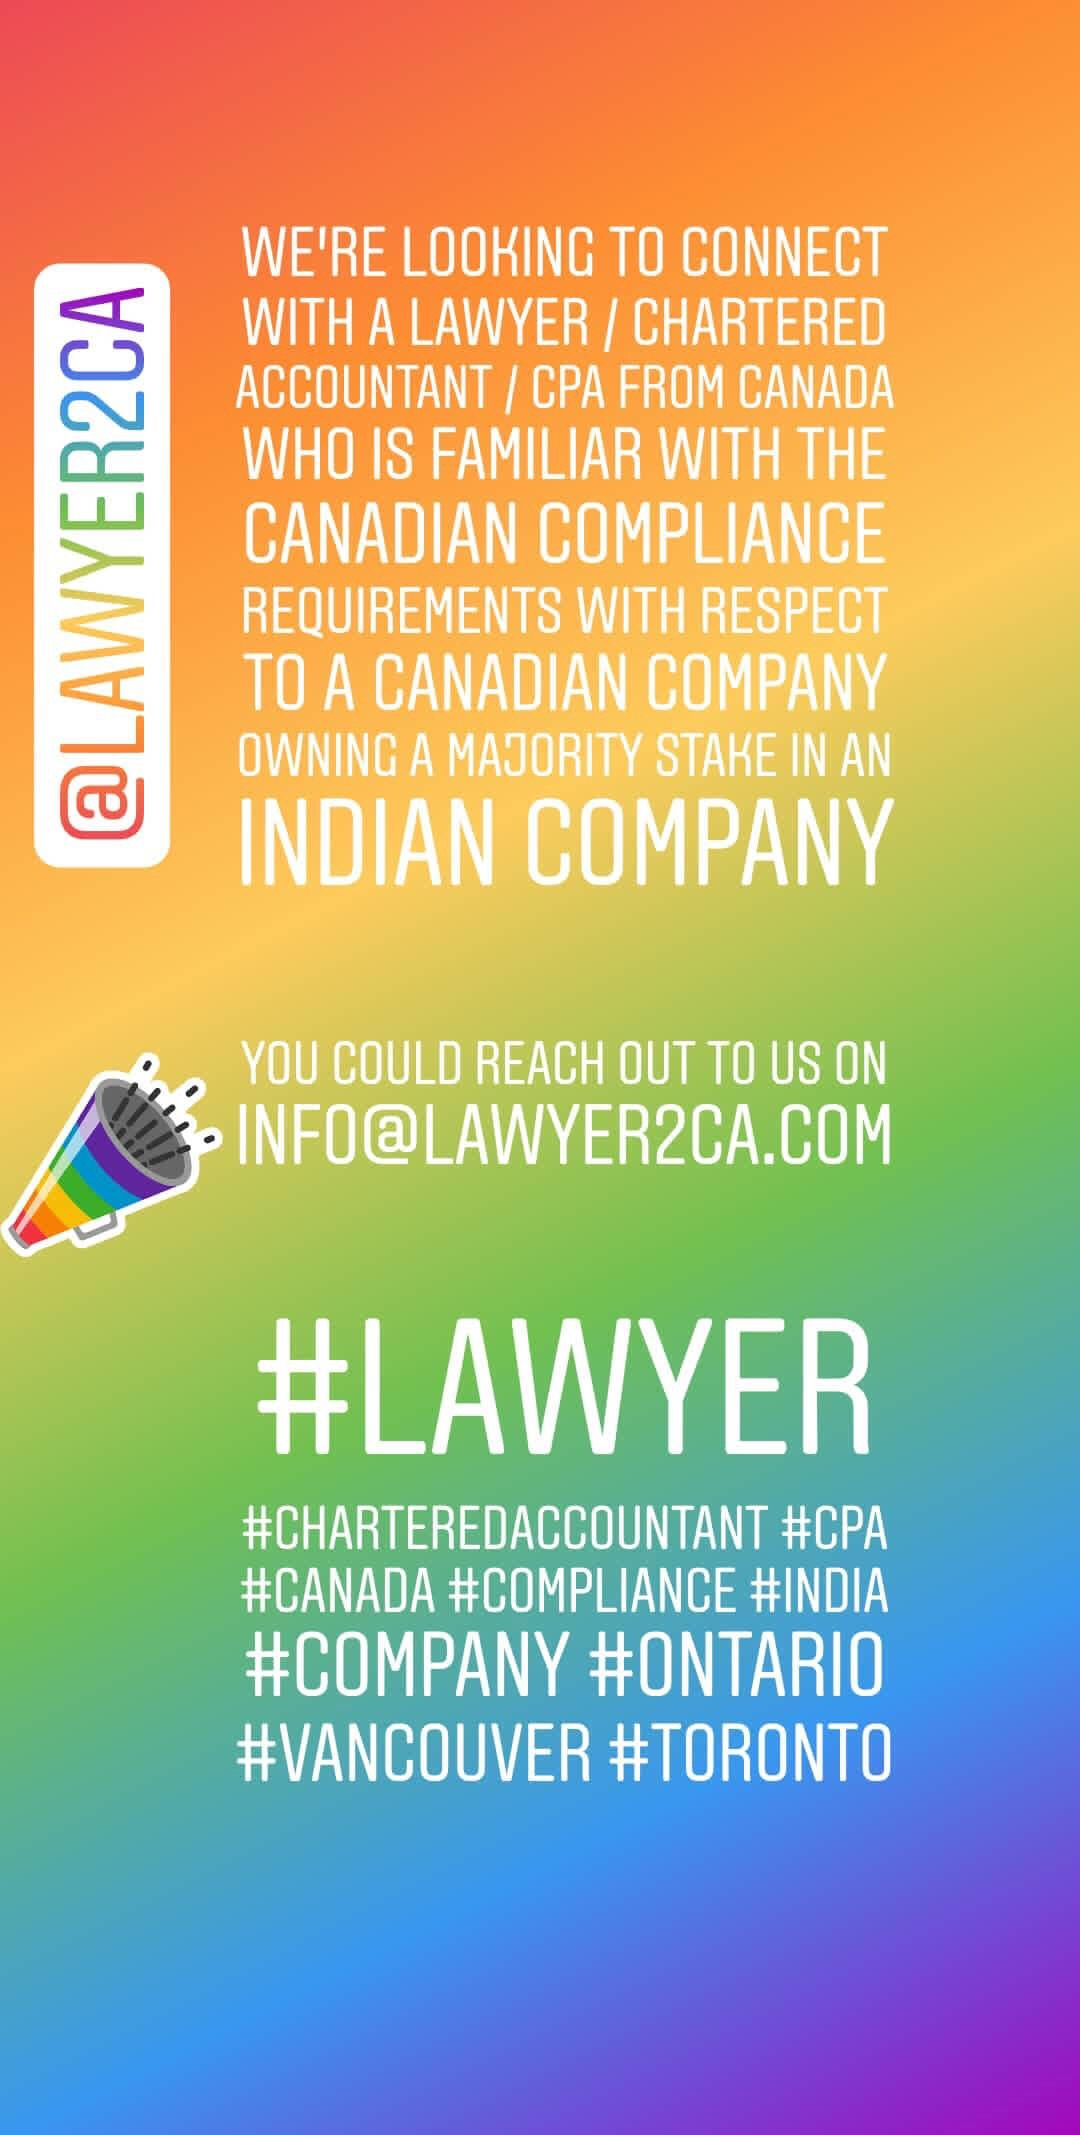 Chartered Accountant Cpa Lawyer2ca S Looking To Connect With A Lawyer Chartered